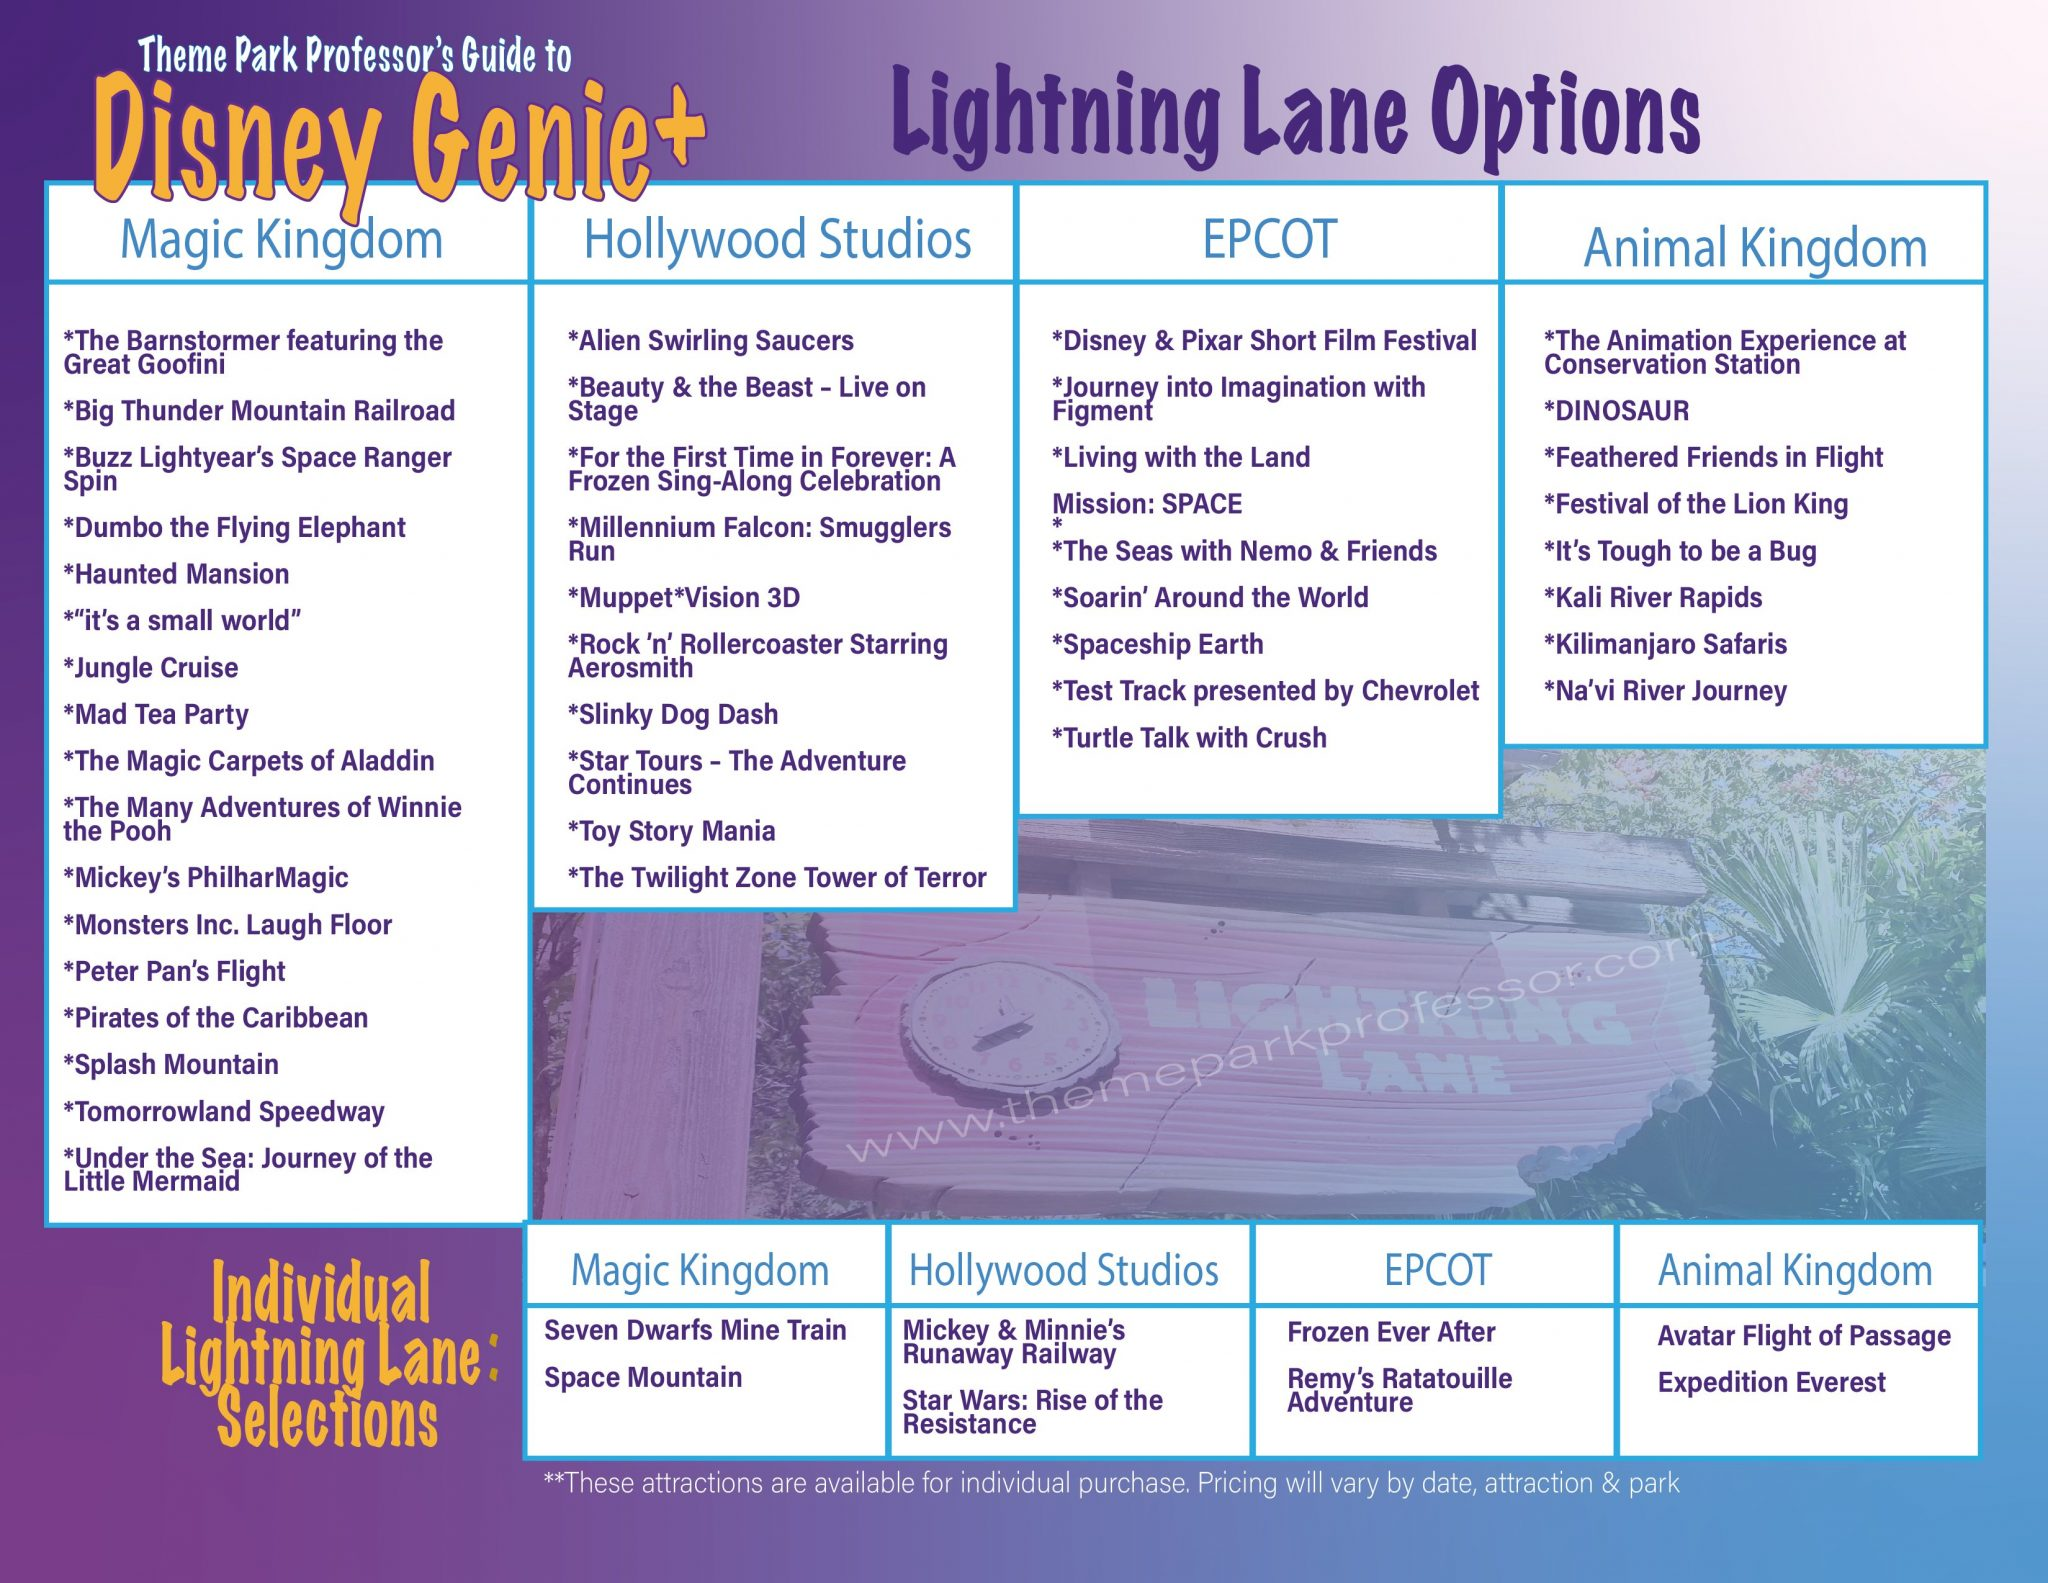 To make it even easier on guests planning to visit Walt Disney World we have made this guide you can print out or save to your phone!